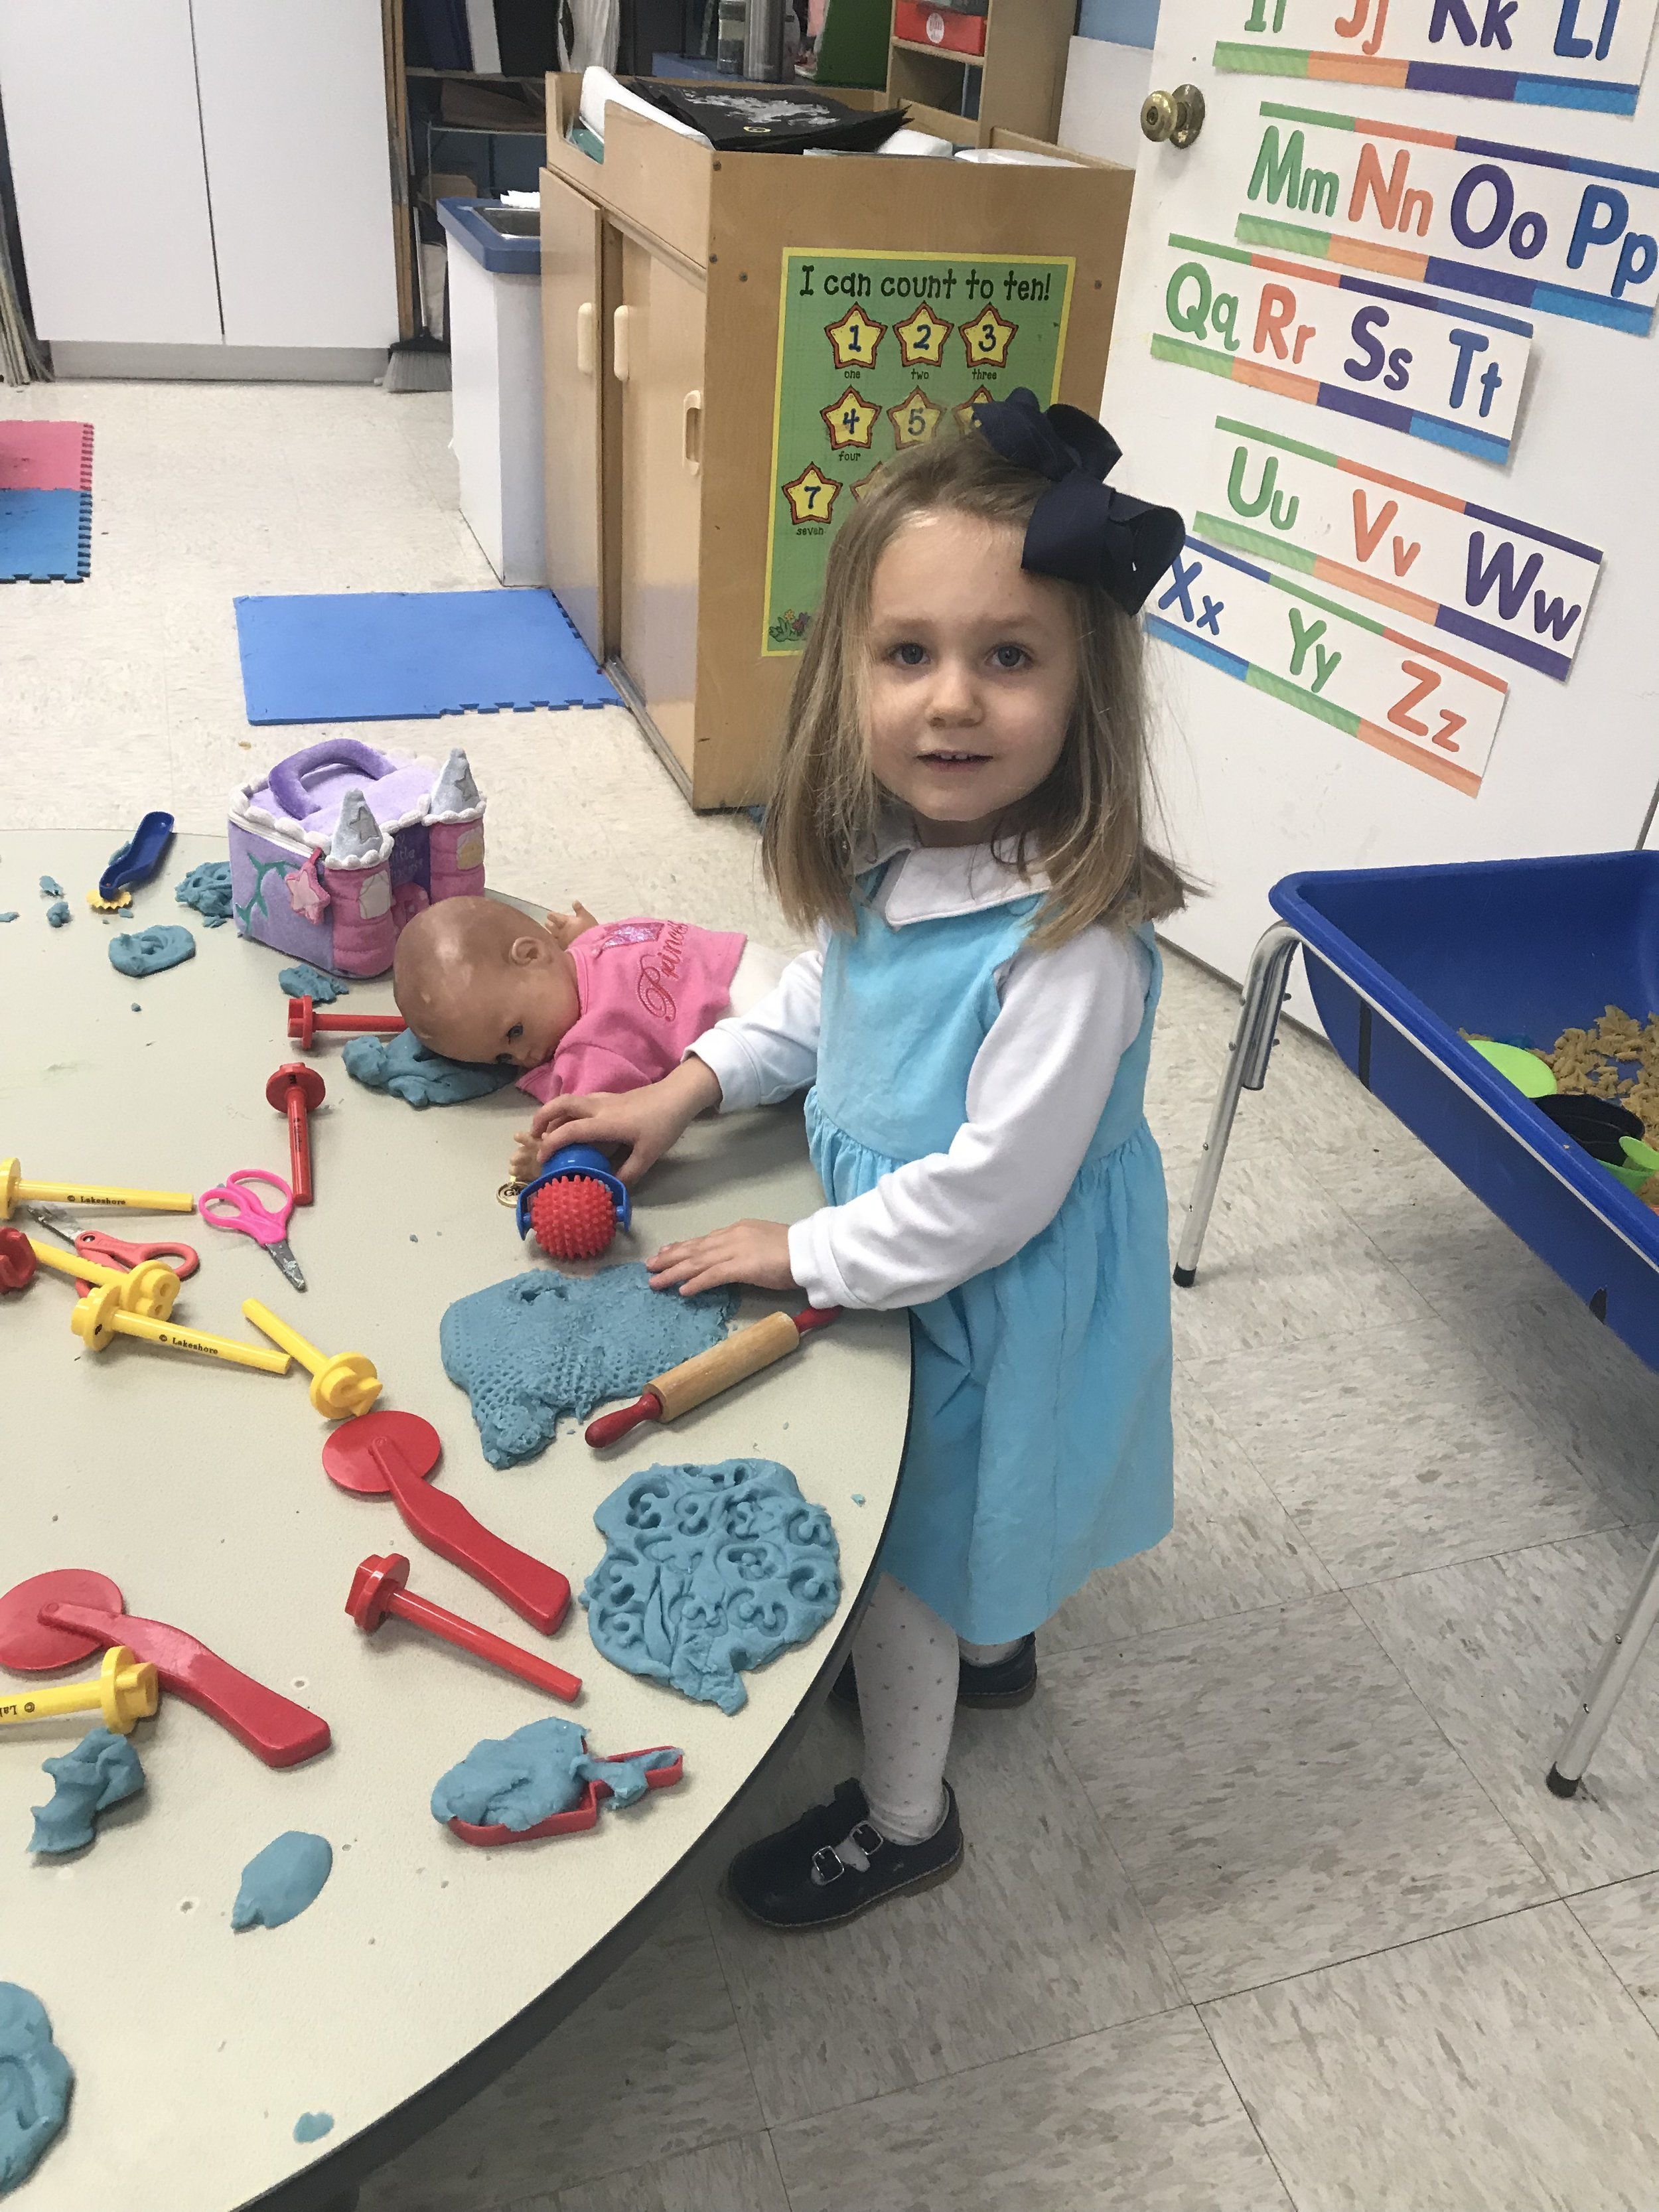 """Mary Witt """"rolling out some pizza"""" with play-doh."""